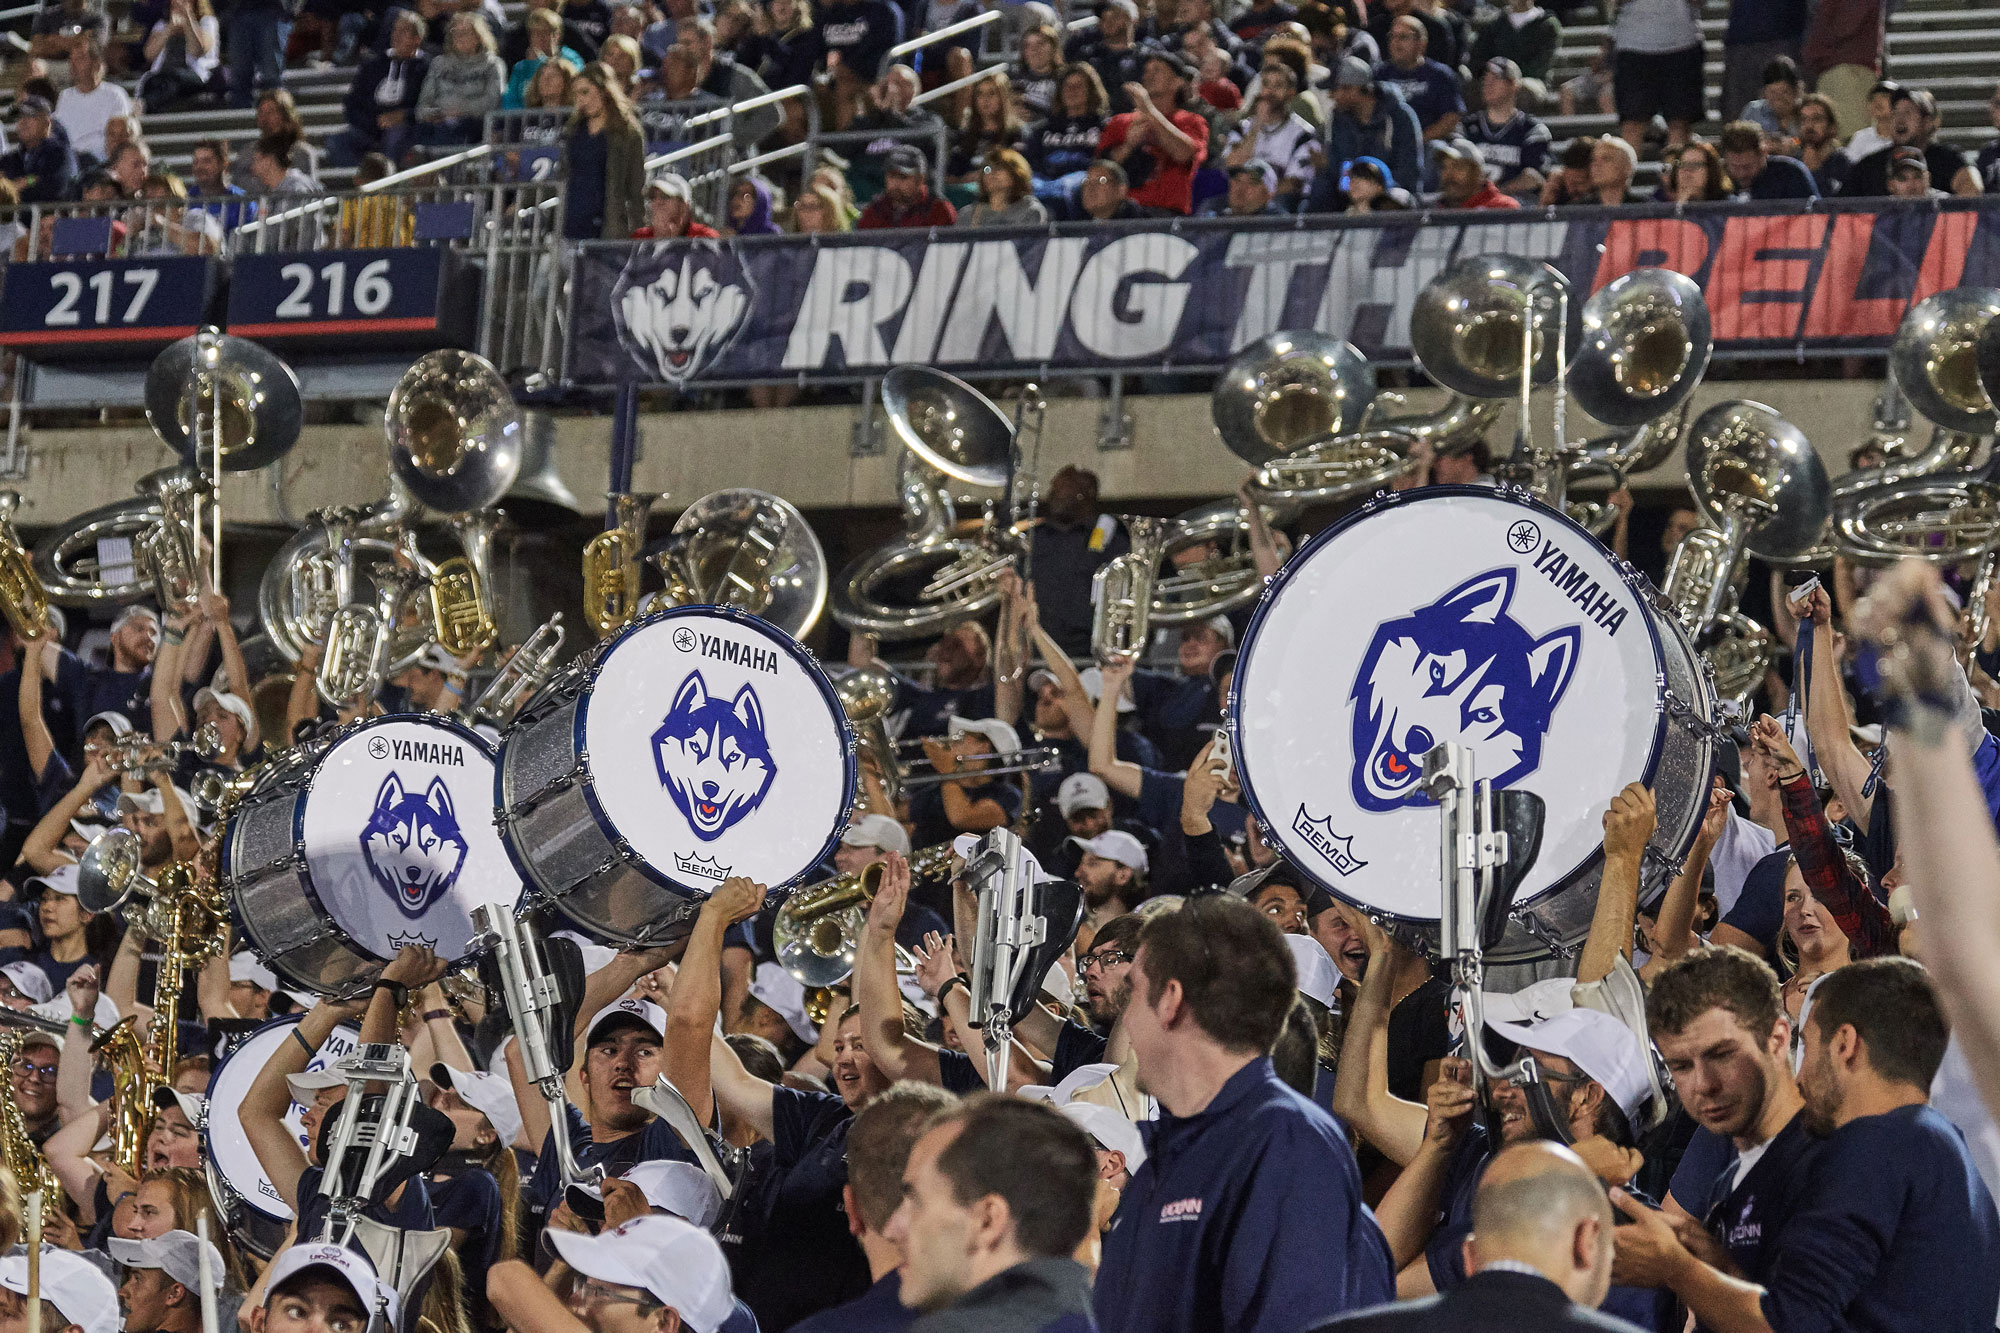 The UConn Marching Band at Rentschler Field